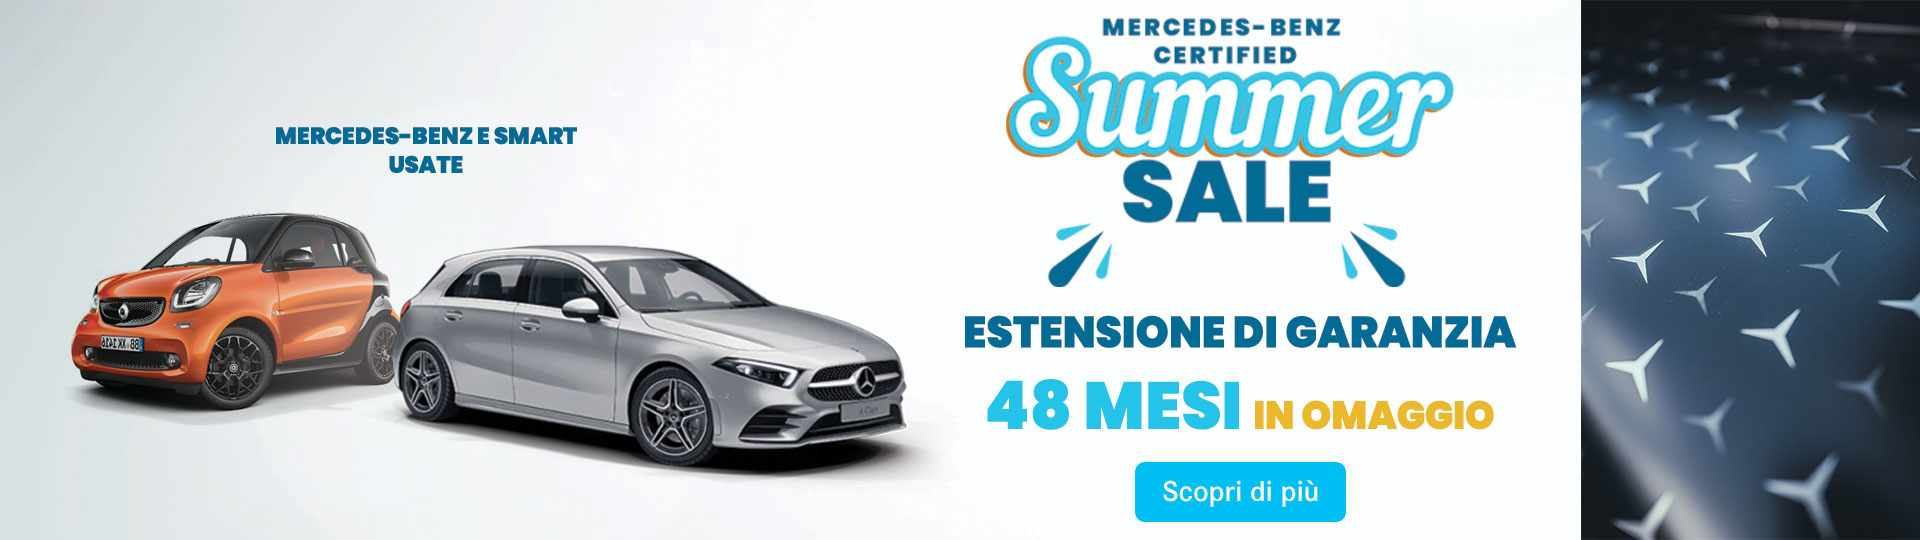 header_gamma_summer_sales_mercedes_agosto_2020.jpg